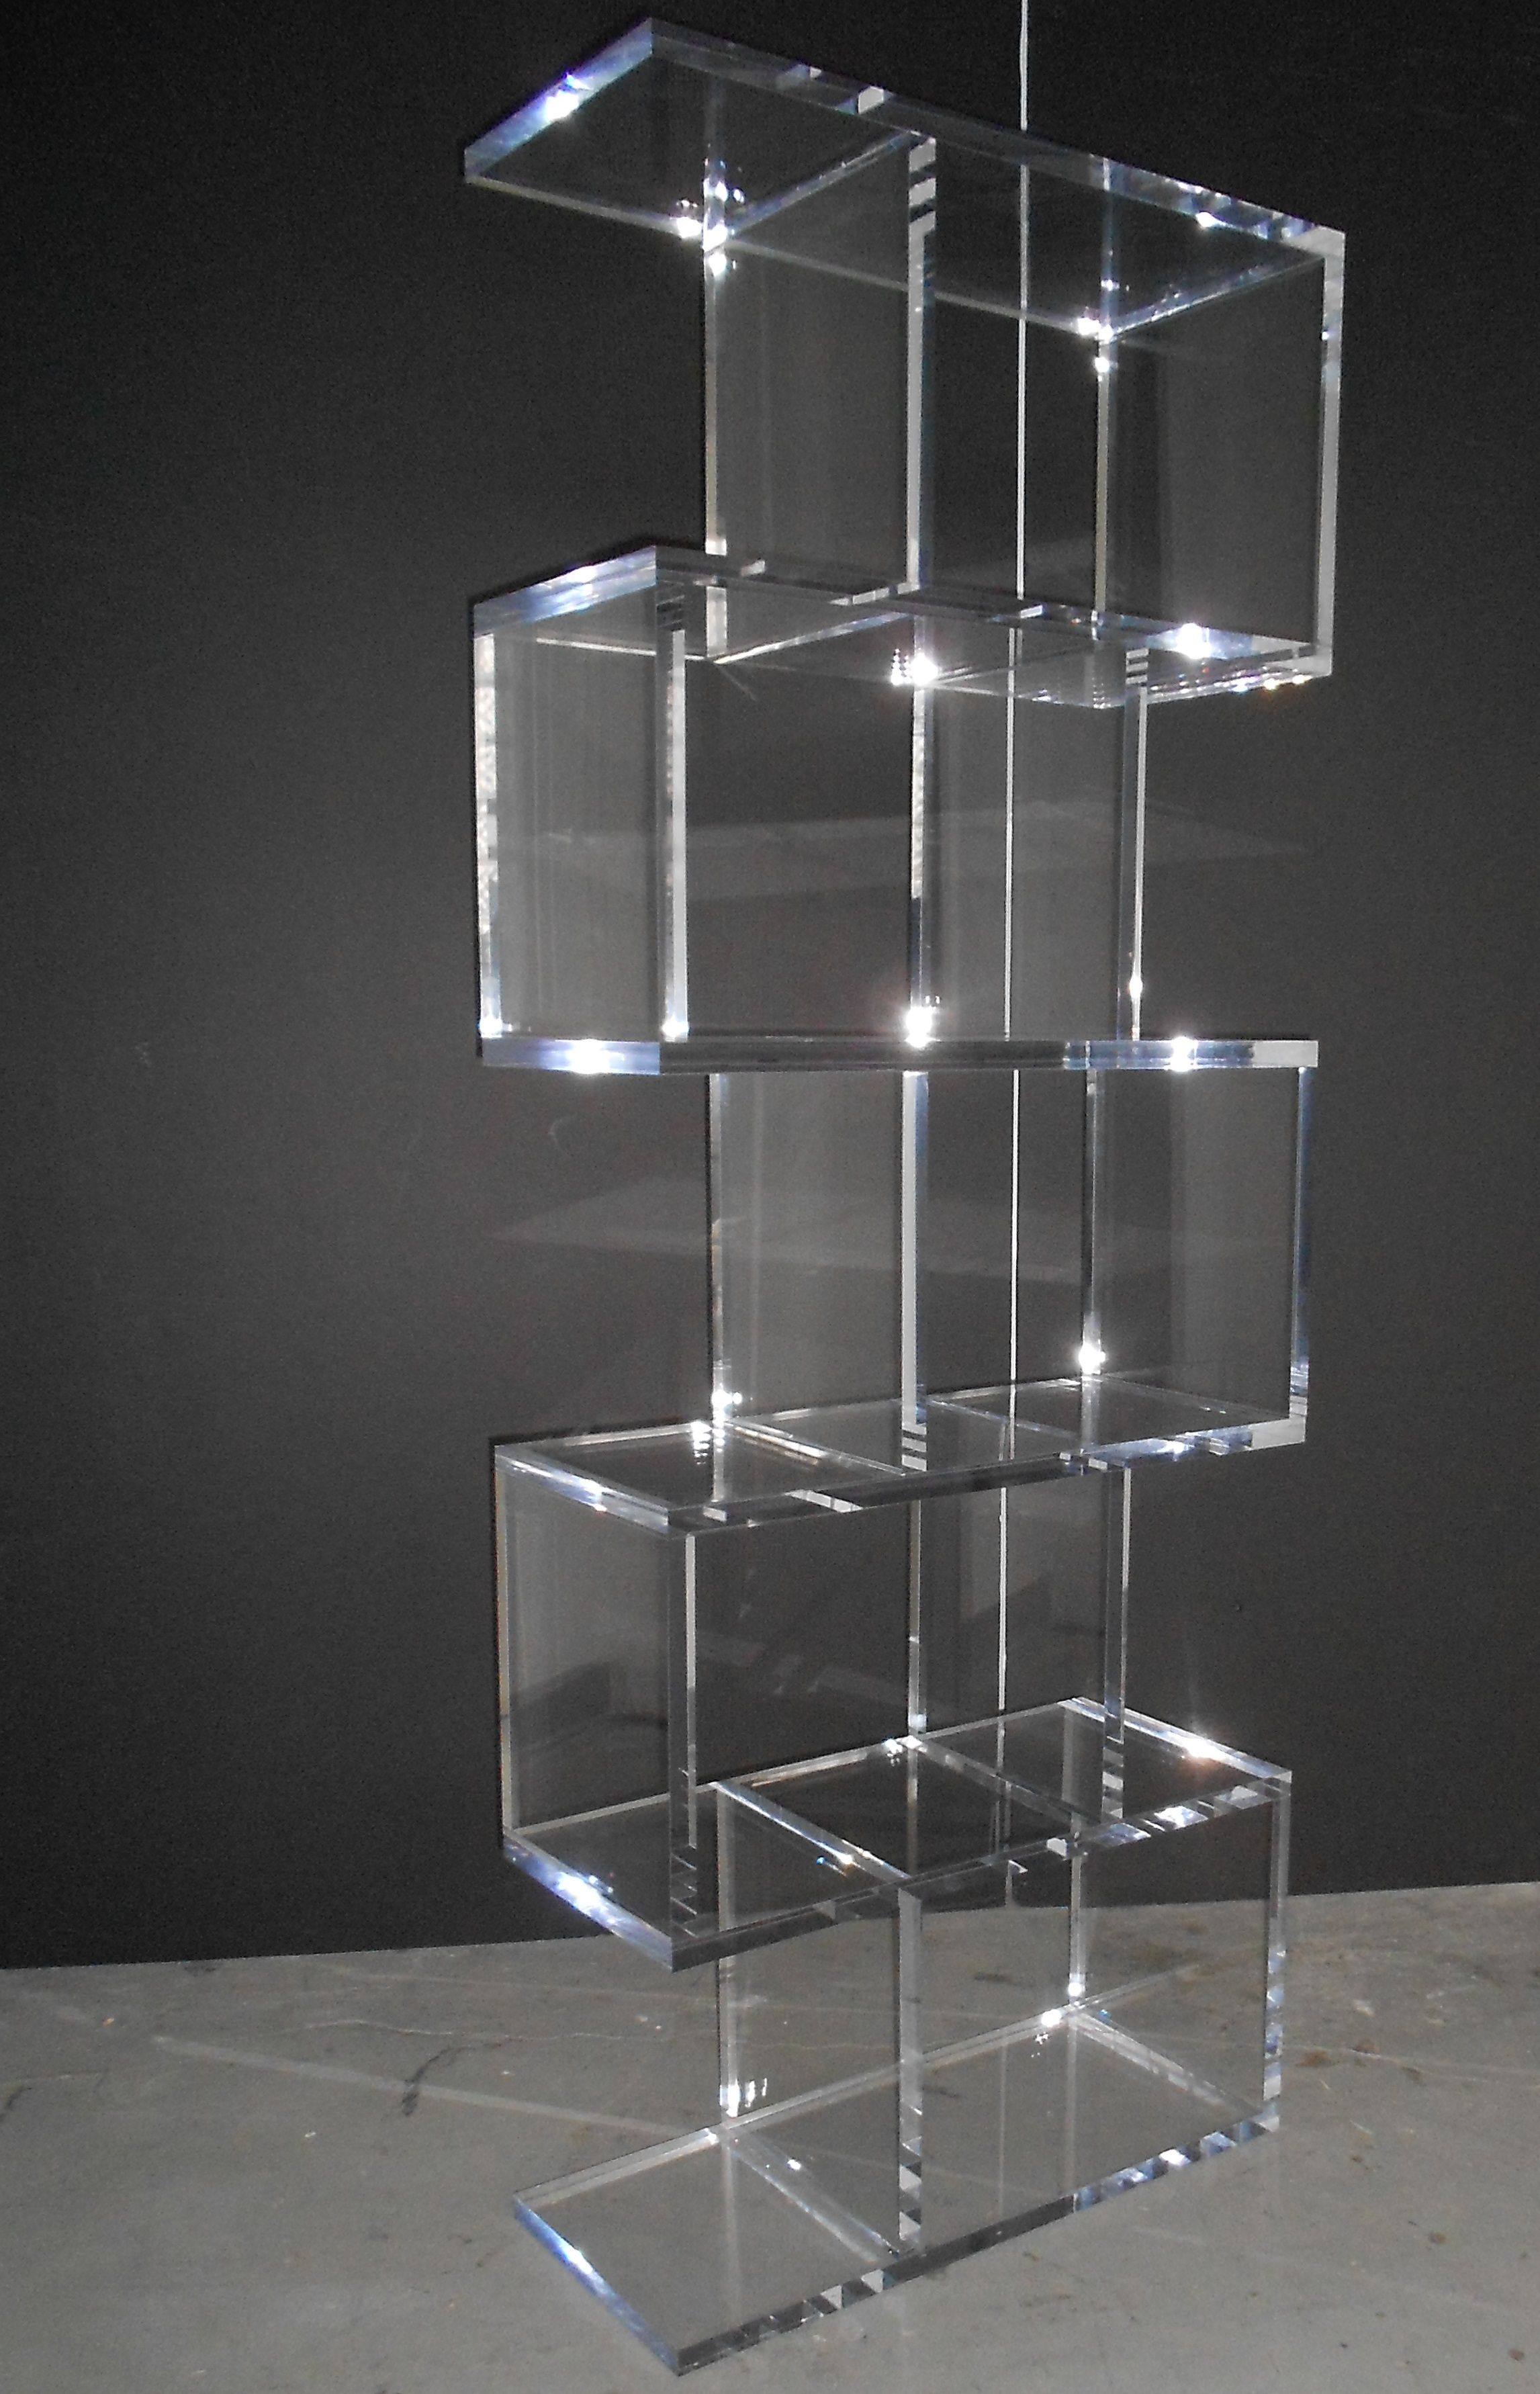 acrylic pin this furniture house pinterest lucite i ideas heart similar bookcase bookcases den